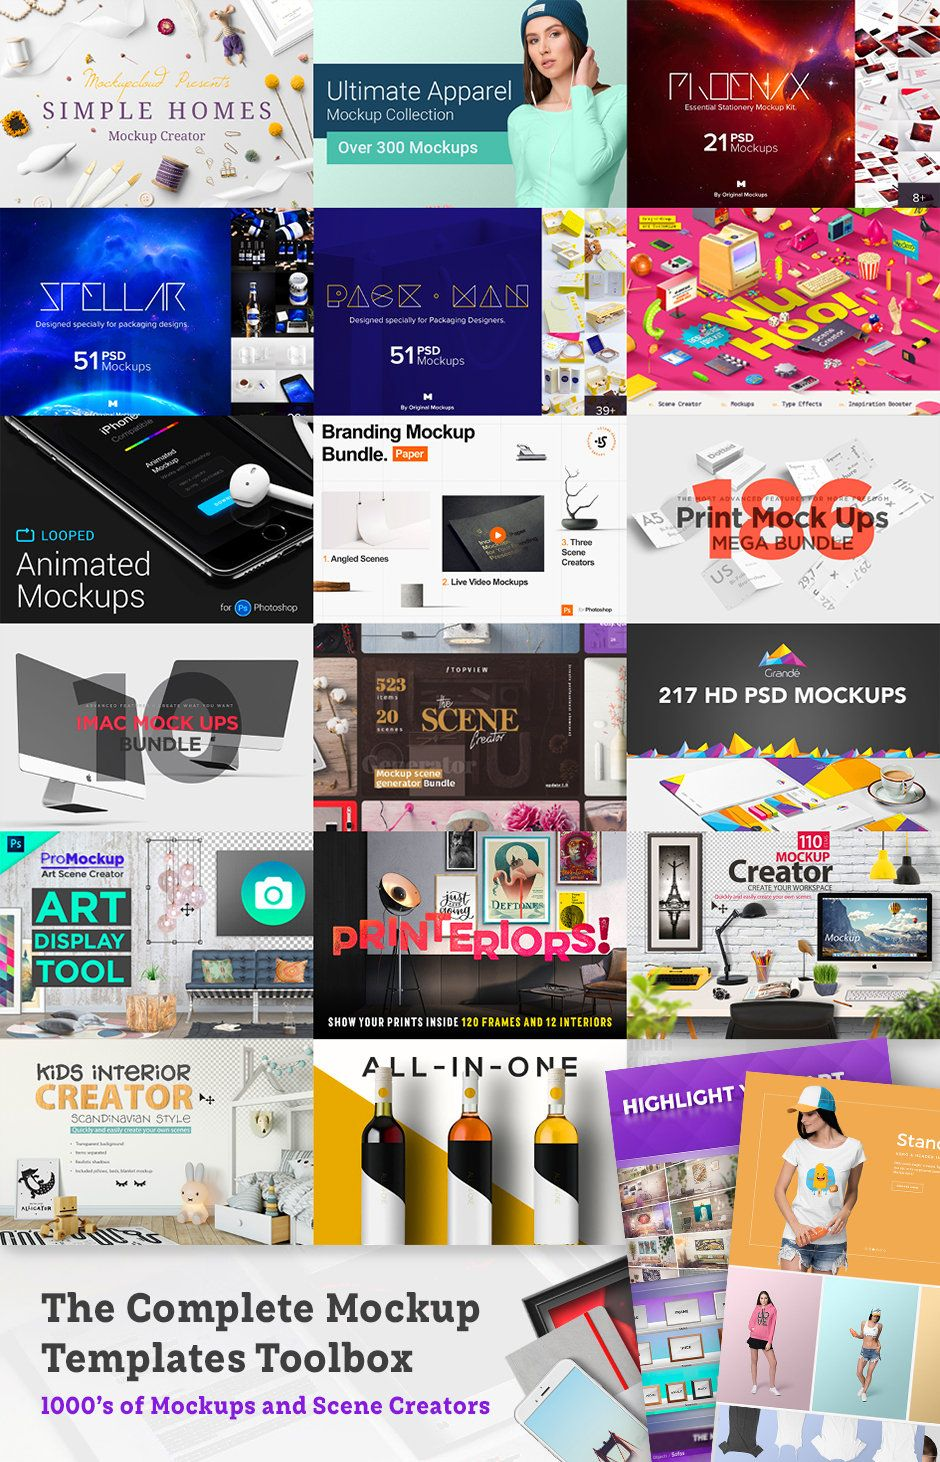 The Complete Mockup Templates Toolbox — 99 Off, Limited